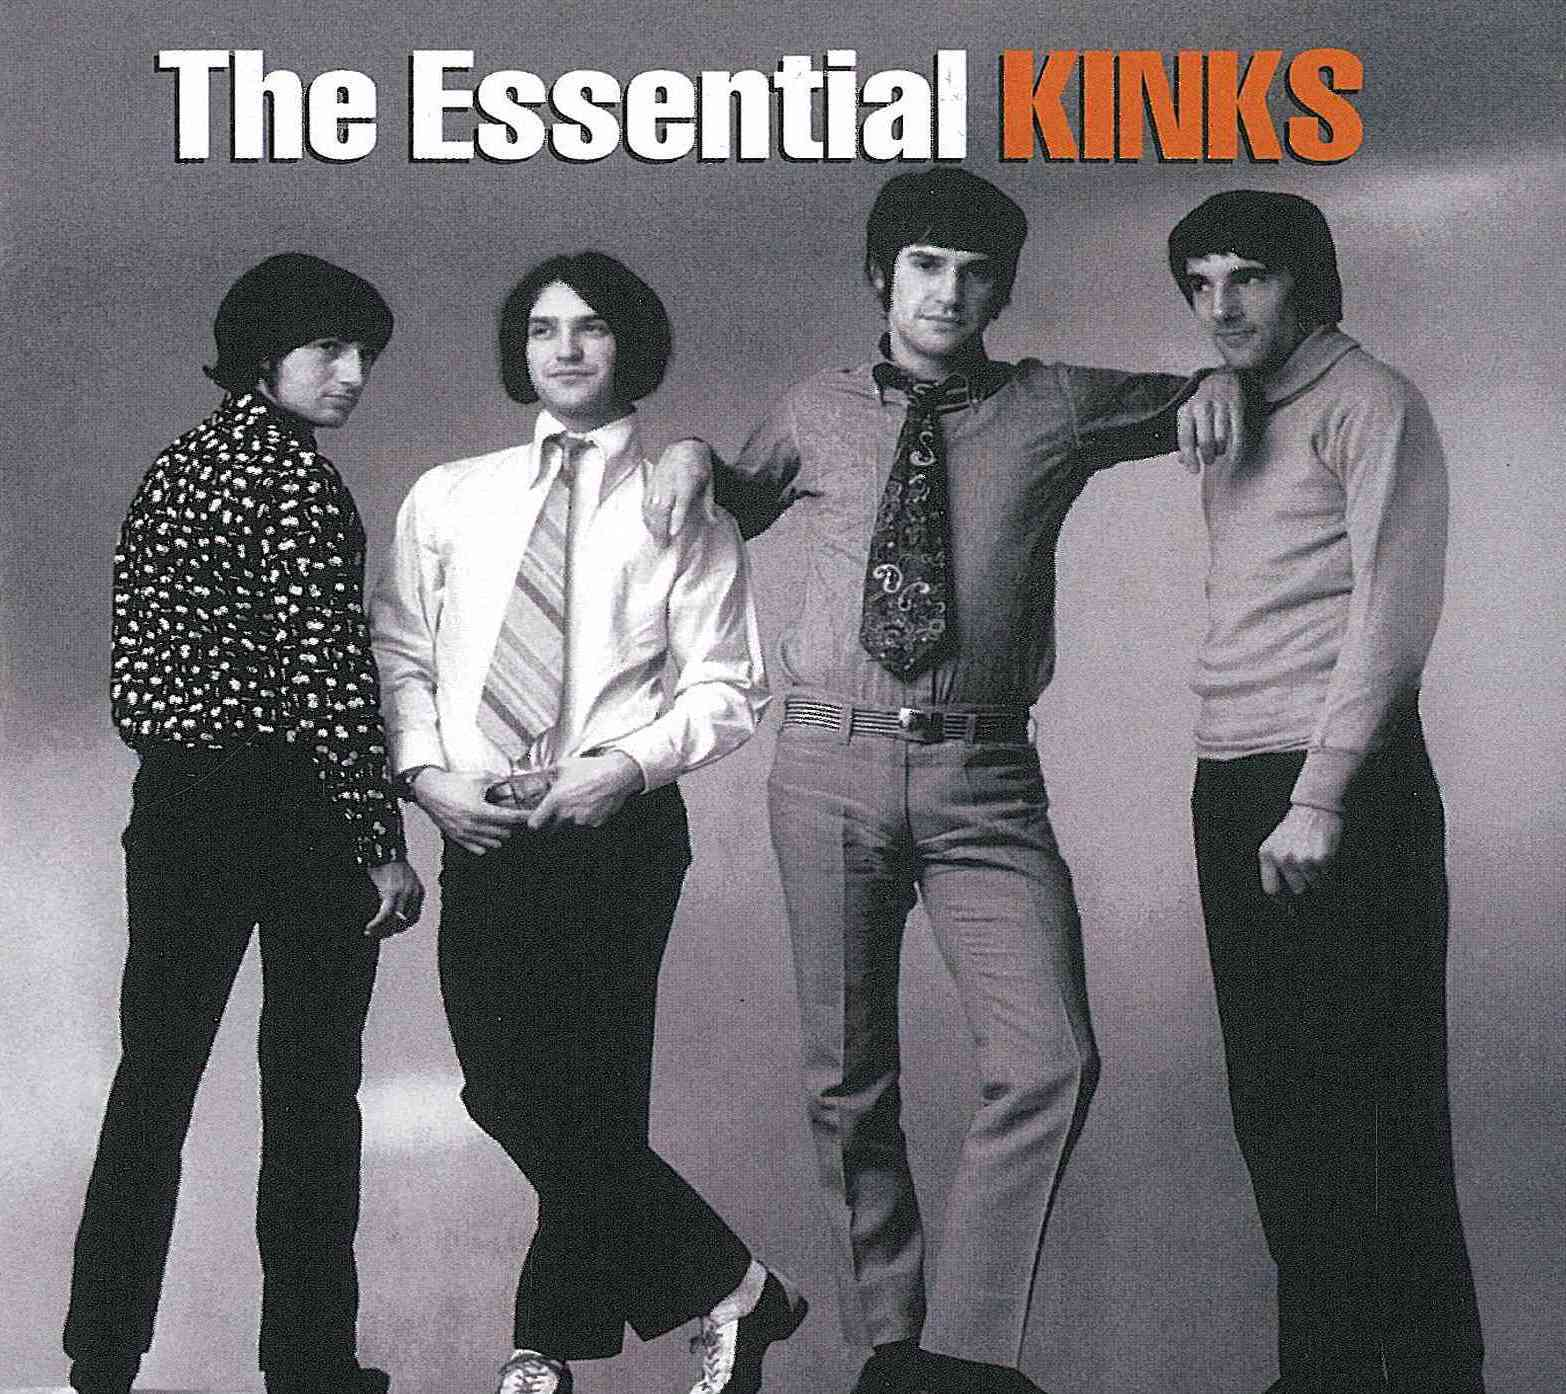 Kinks the singles collection The Singles Collection by The Kinks on Amazon Music Unlimited